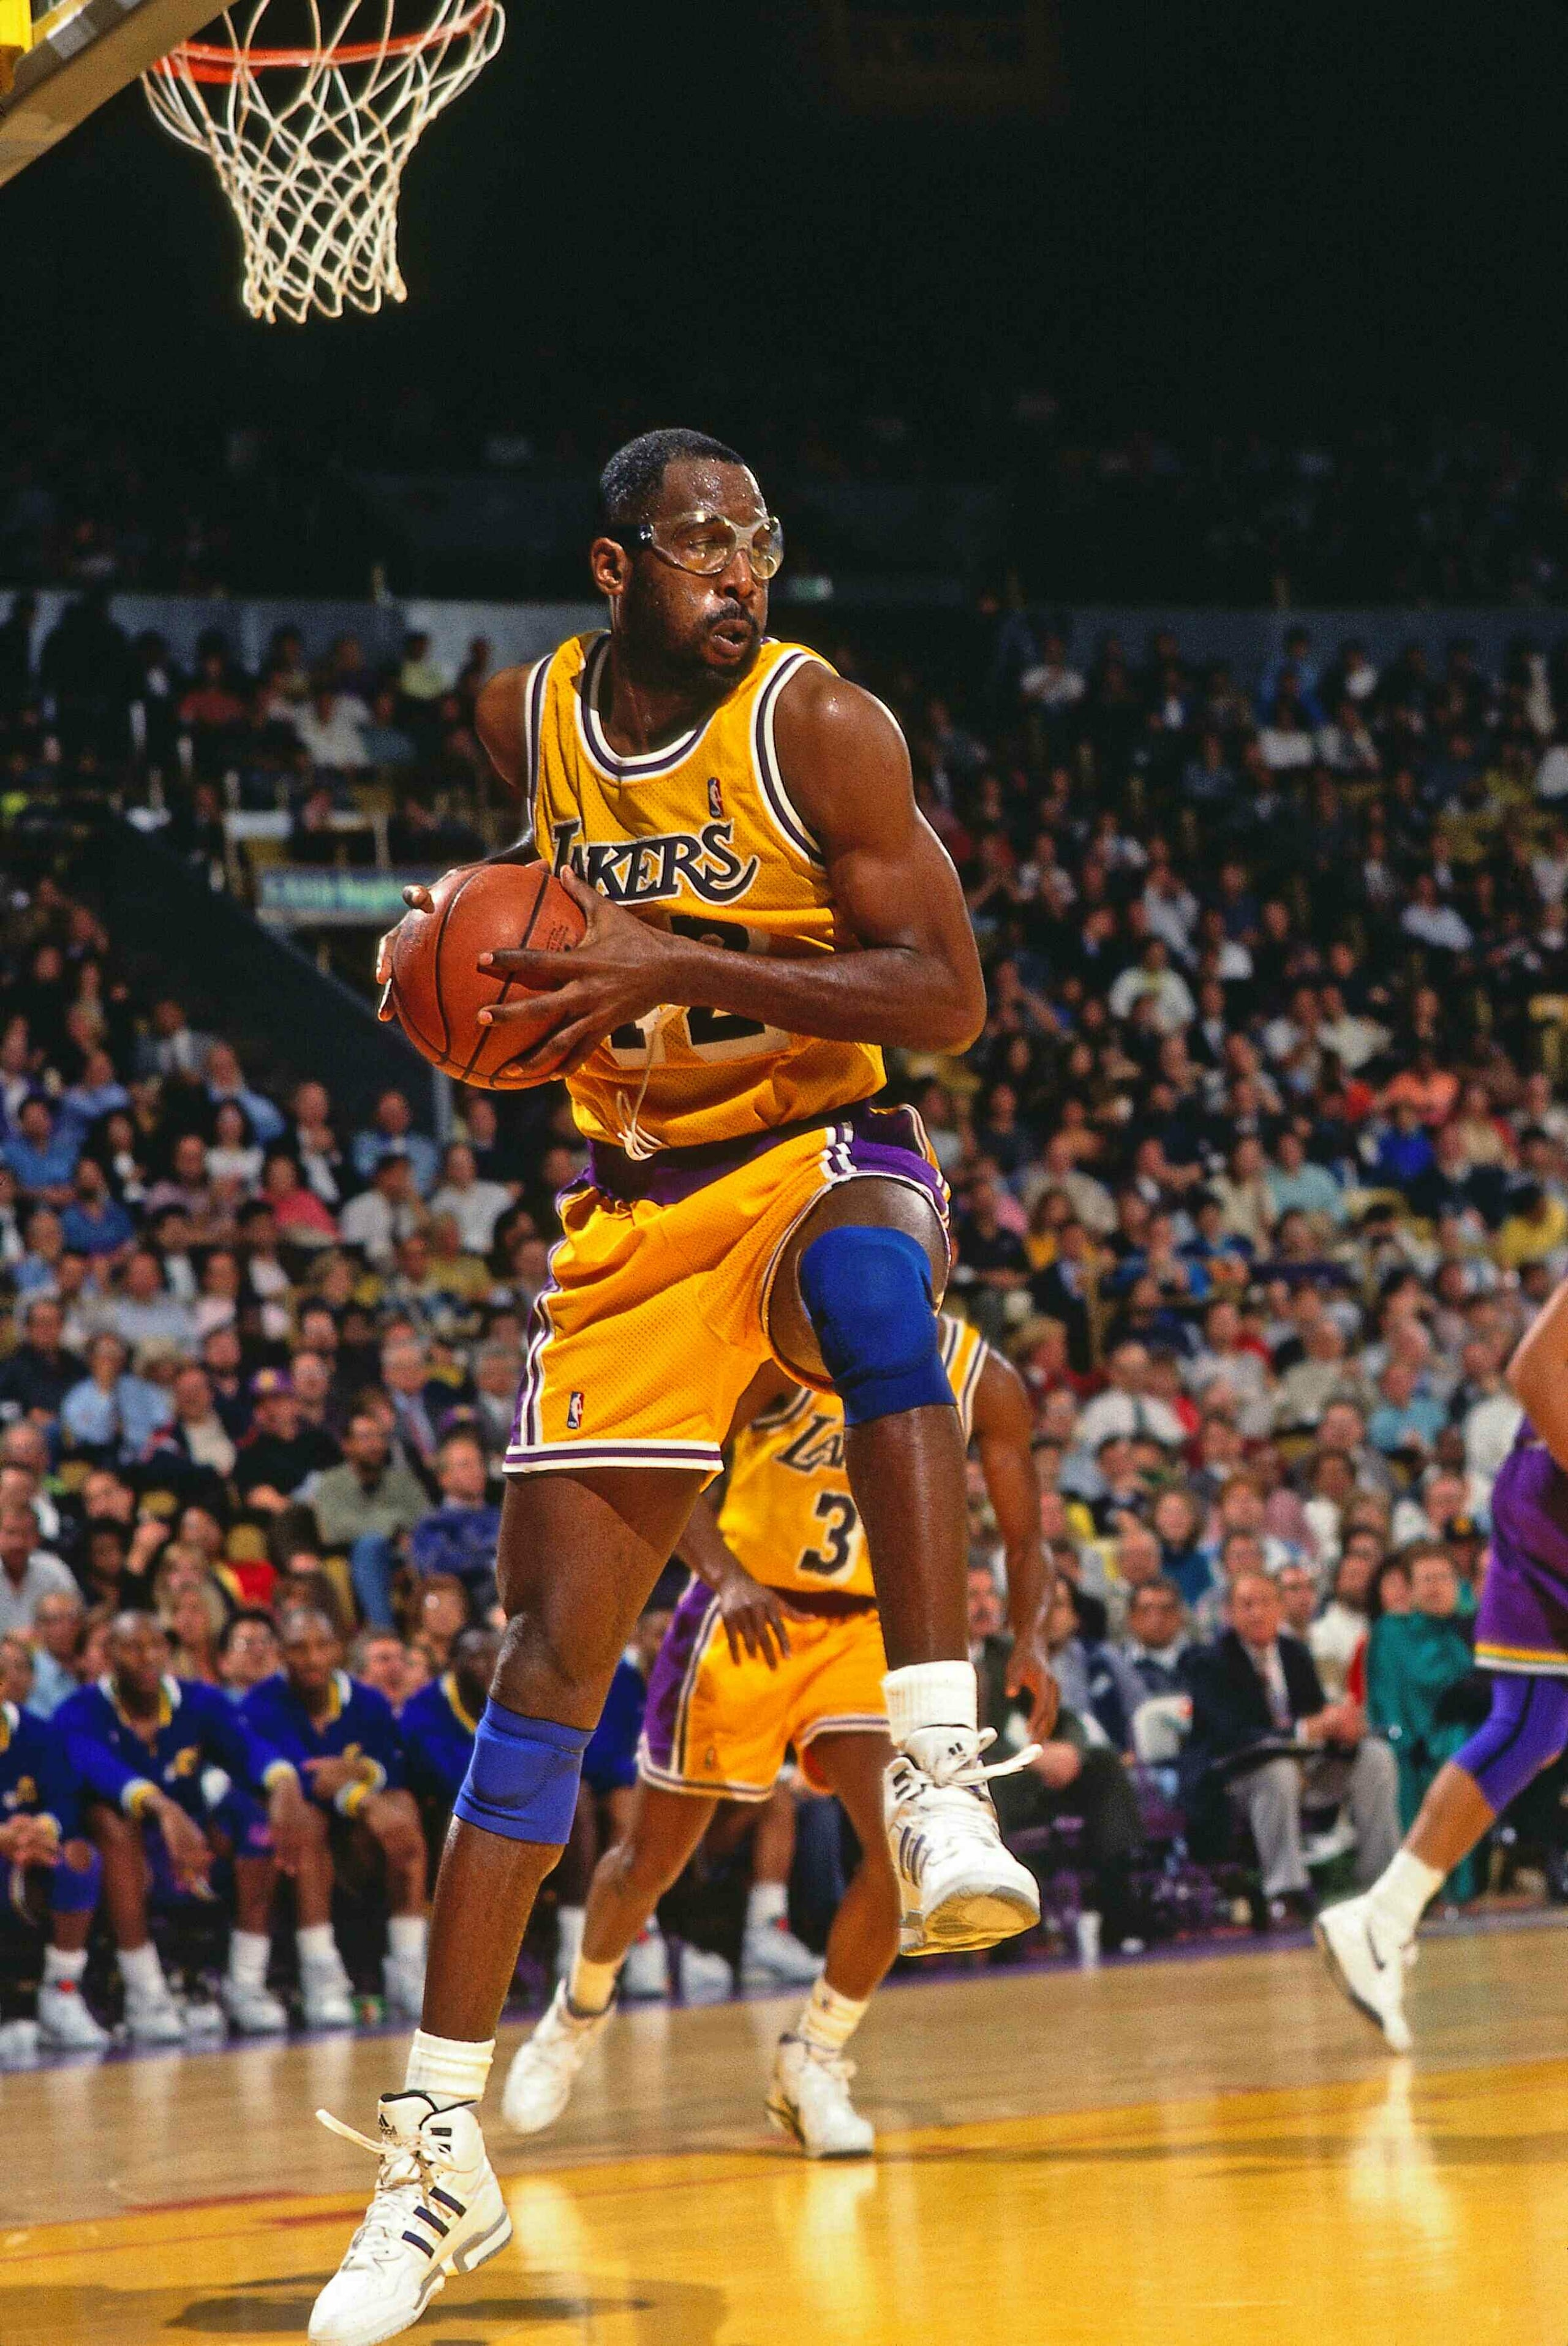 History Of Nba Players In Masks And Face Guards